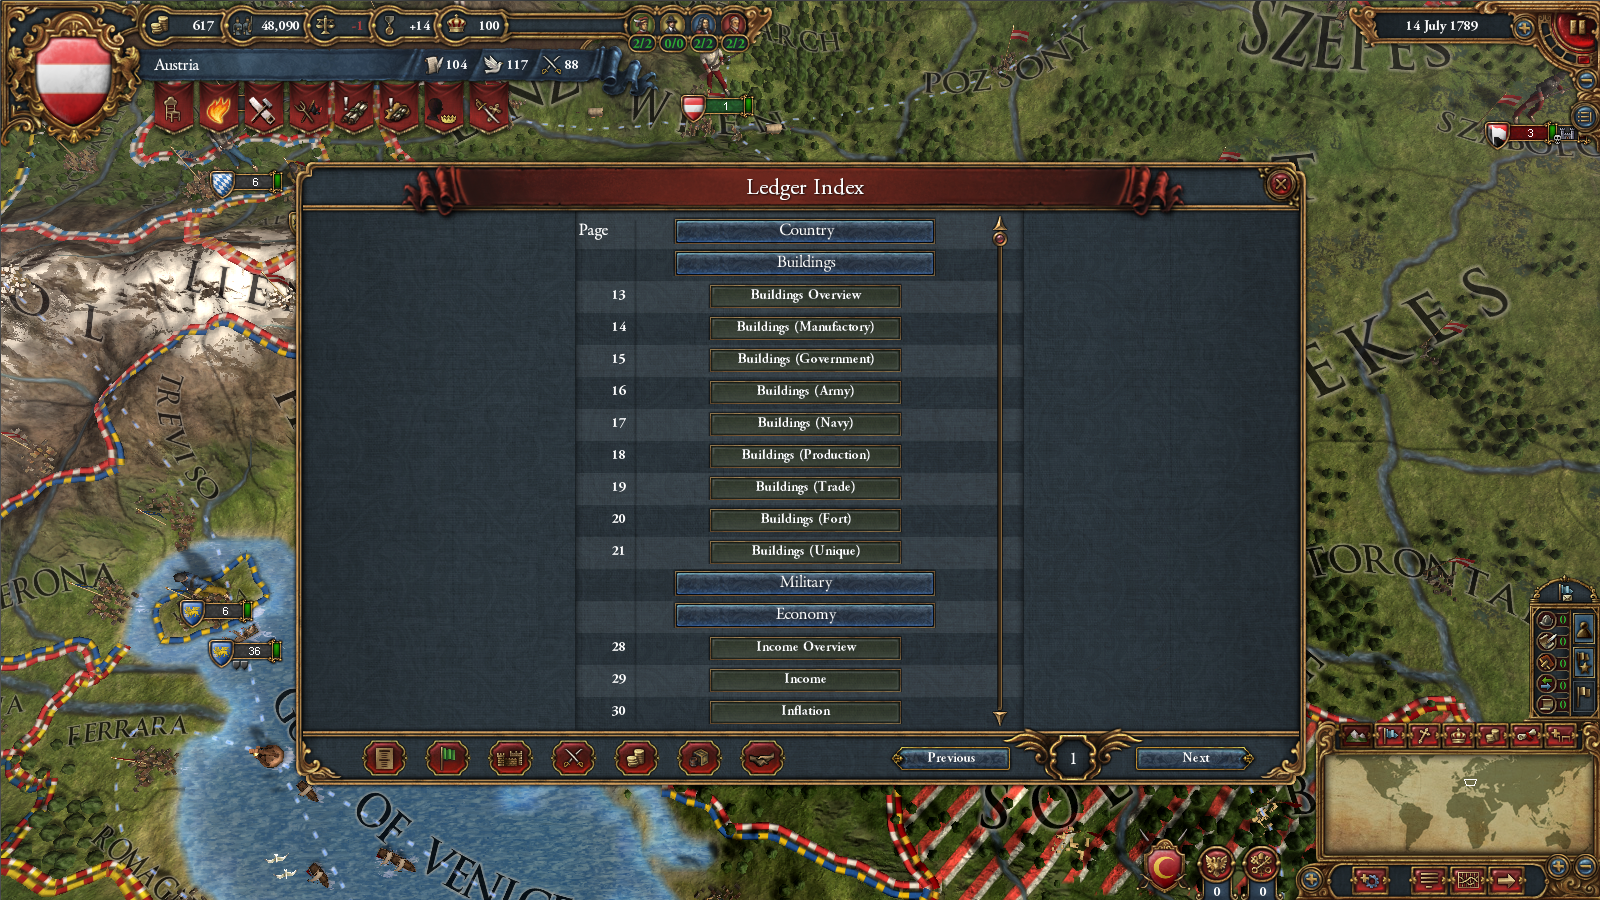 Multiplayer in Europa Universalis 4 Is Actually Fun | The Escapist